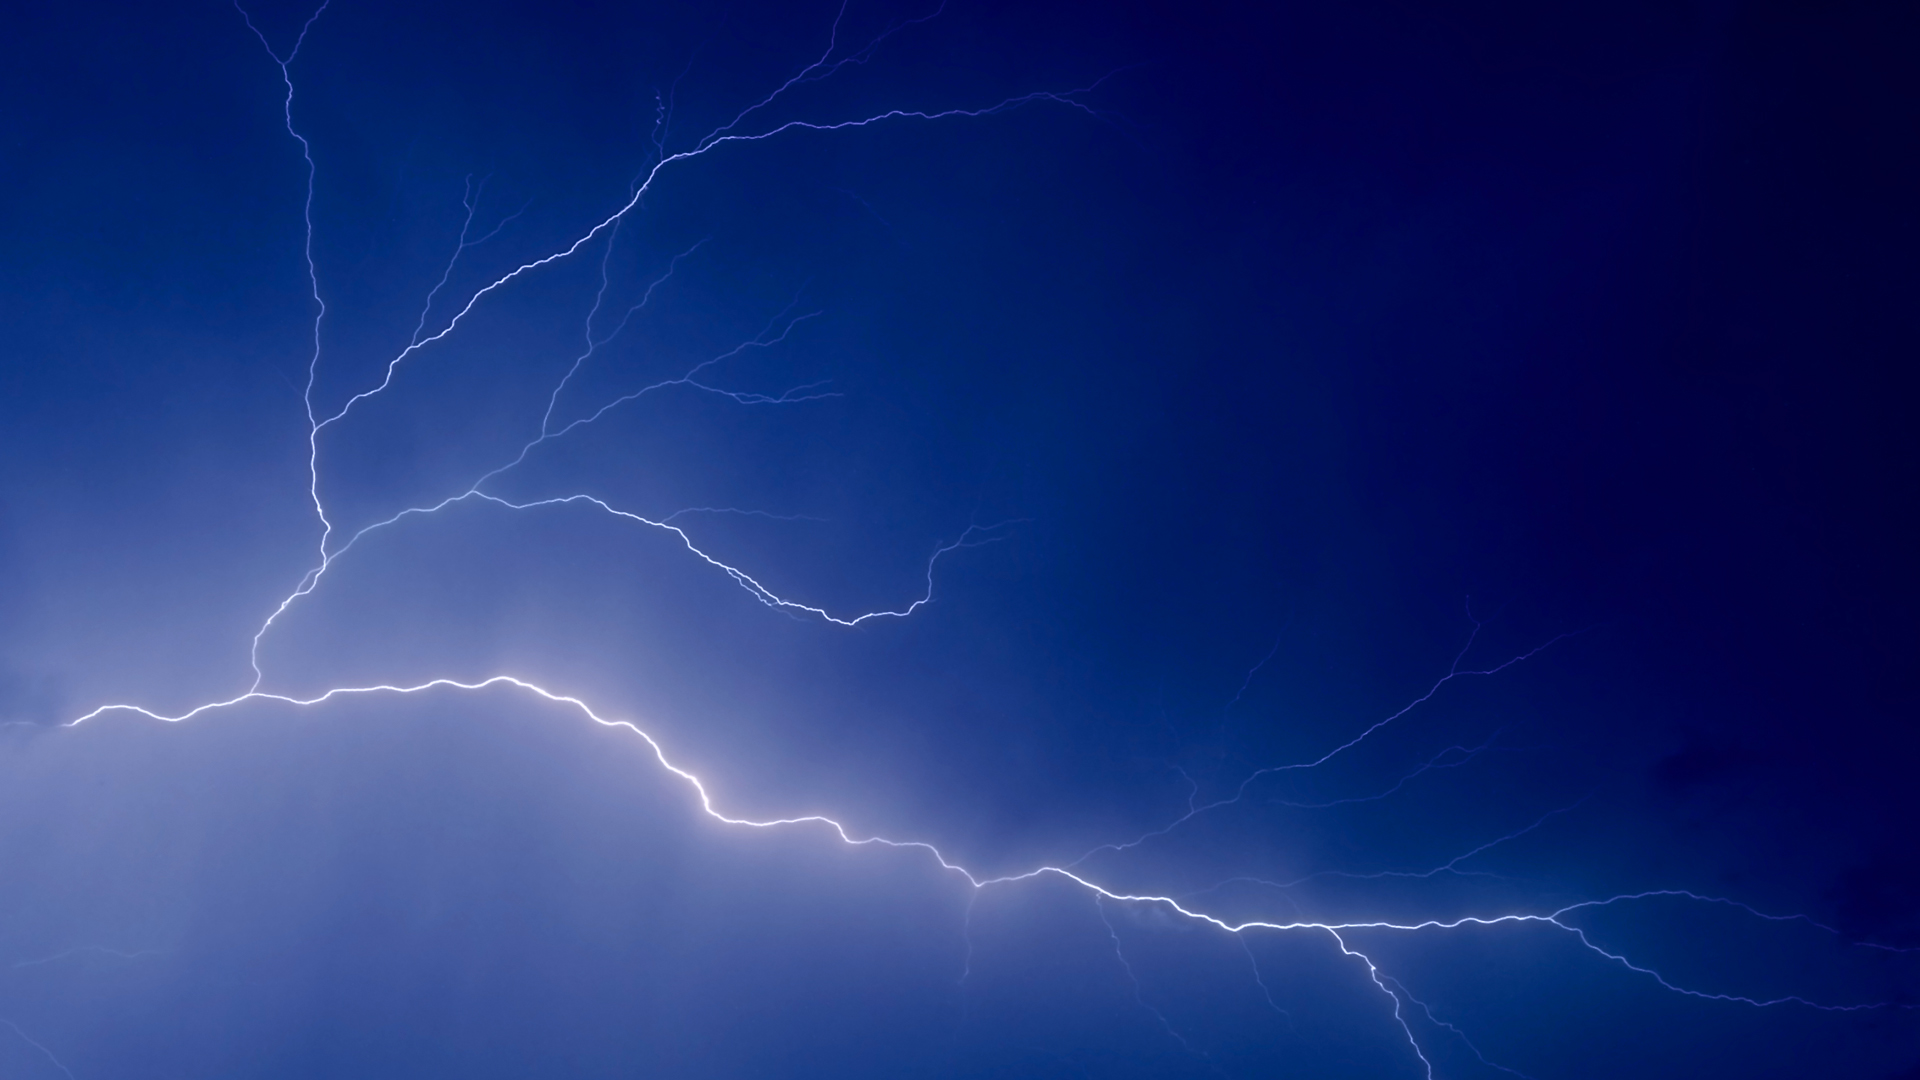 Lightning Storm Wallpapers Wallpaper 1920x1080